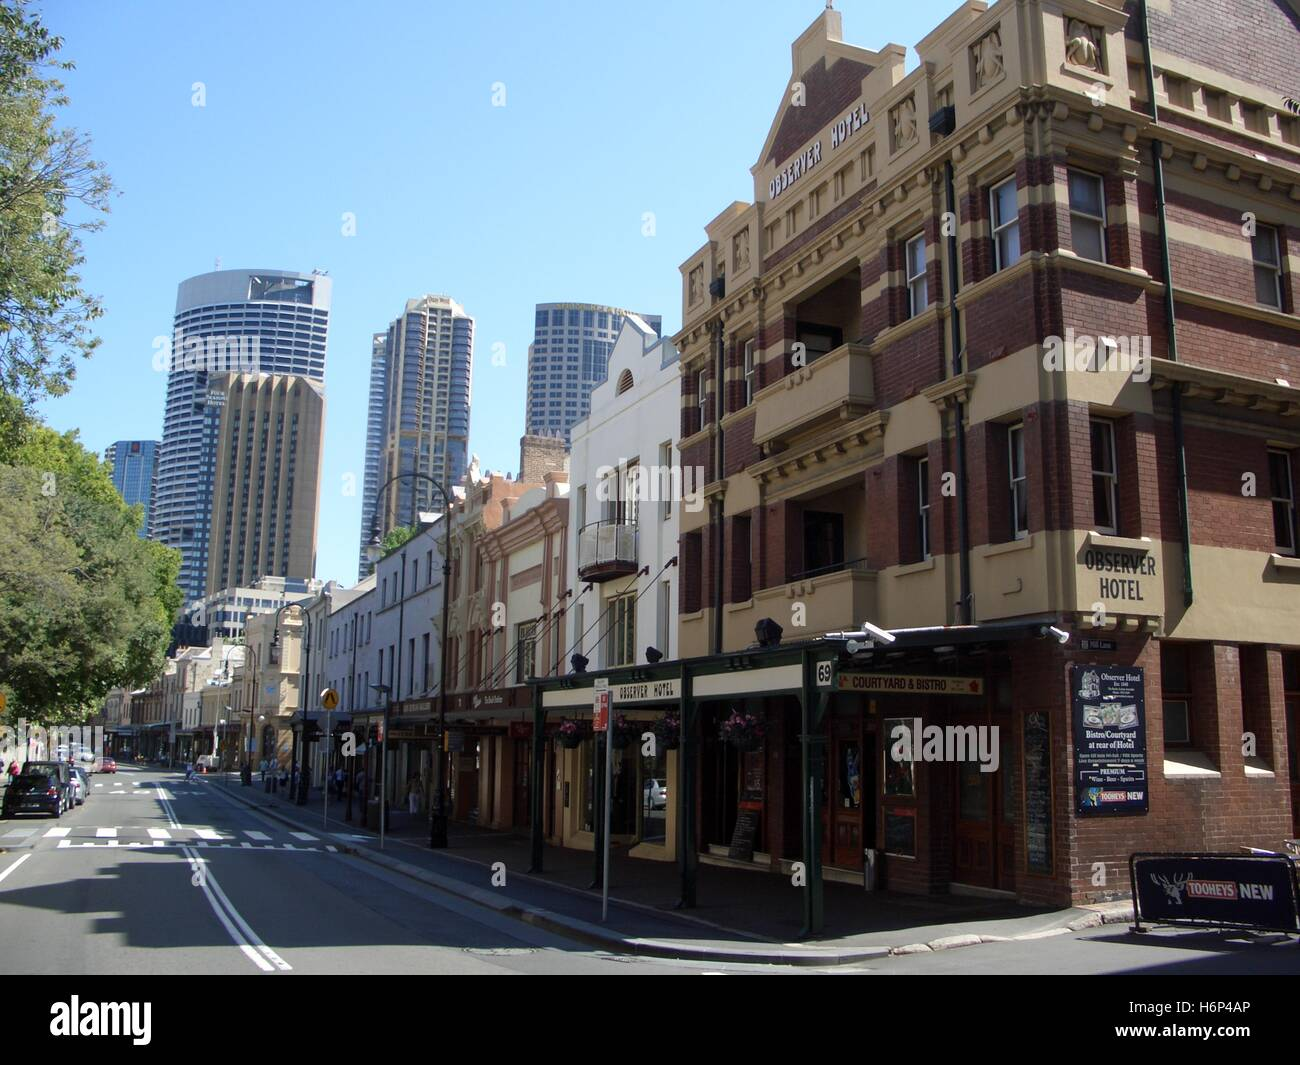 downtown sydney - Stock Image